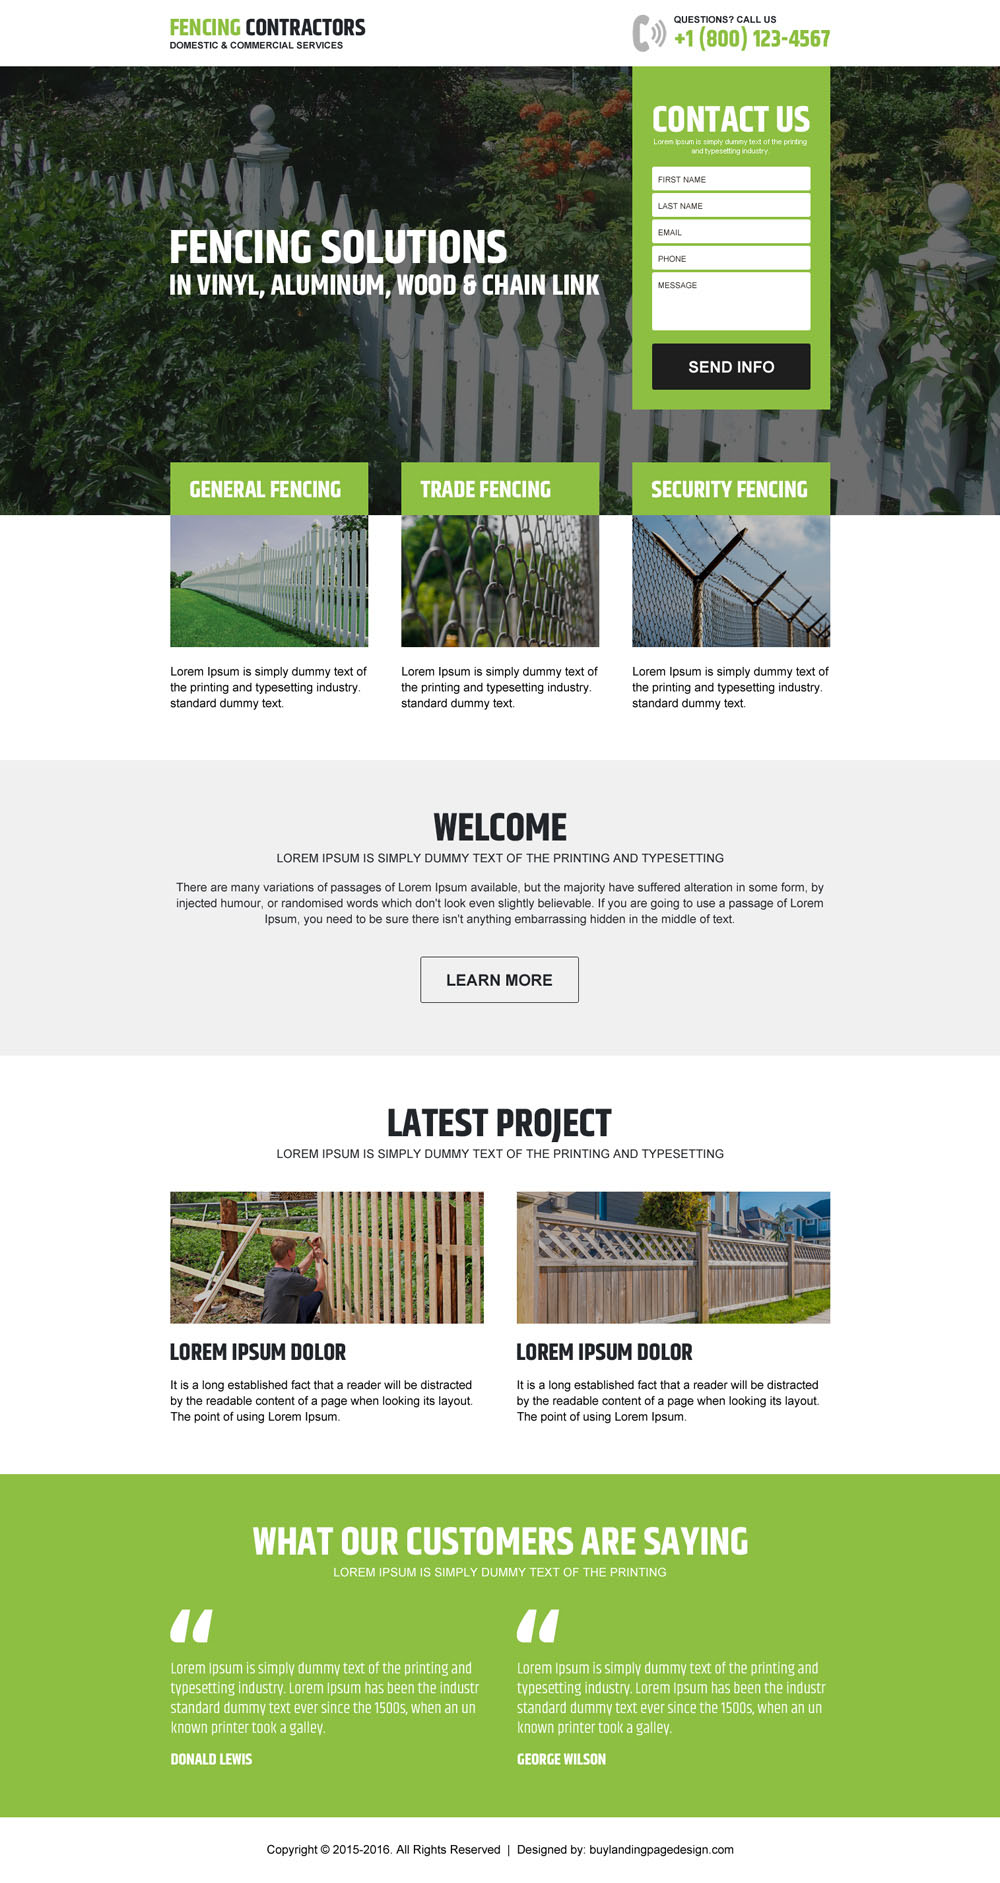 fencing-contractors-for-domestic-and-commercial-service-lead-gen-landing-page-001